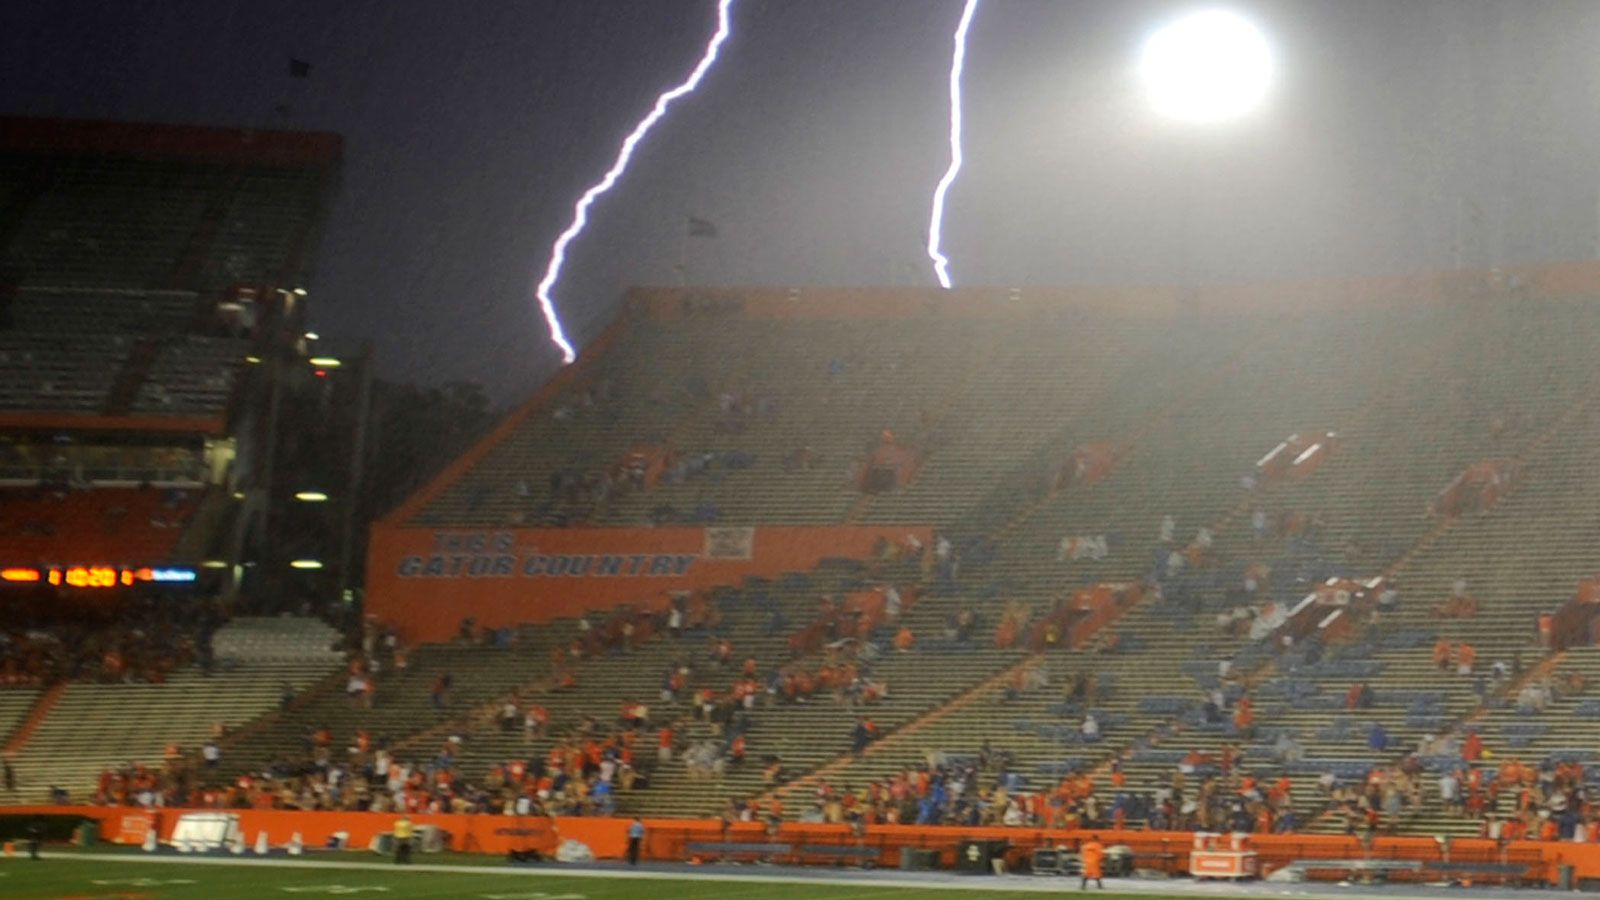 Florida Vs Idaho Game Suspended Due To Weather